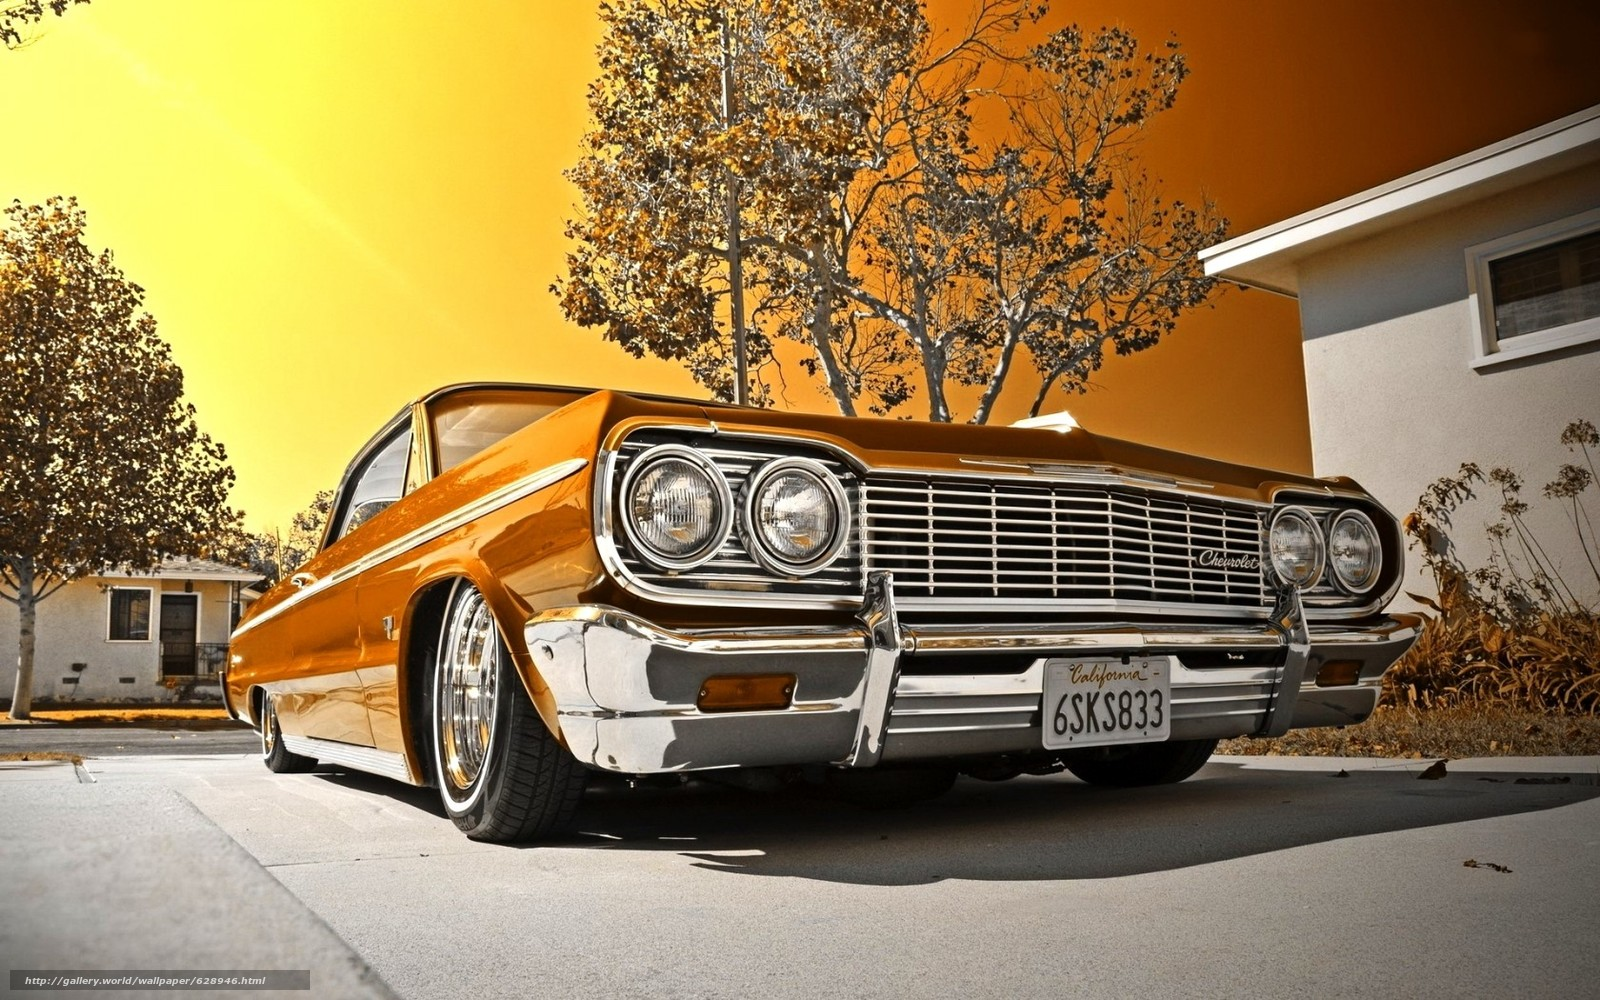 Impala, convertible, Chevrolet, Lowrider, 1964 Télécharger,  image, photo, papier peint